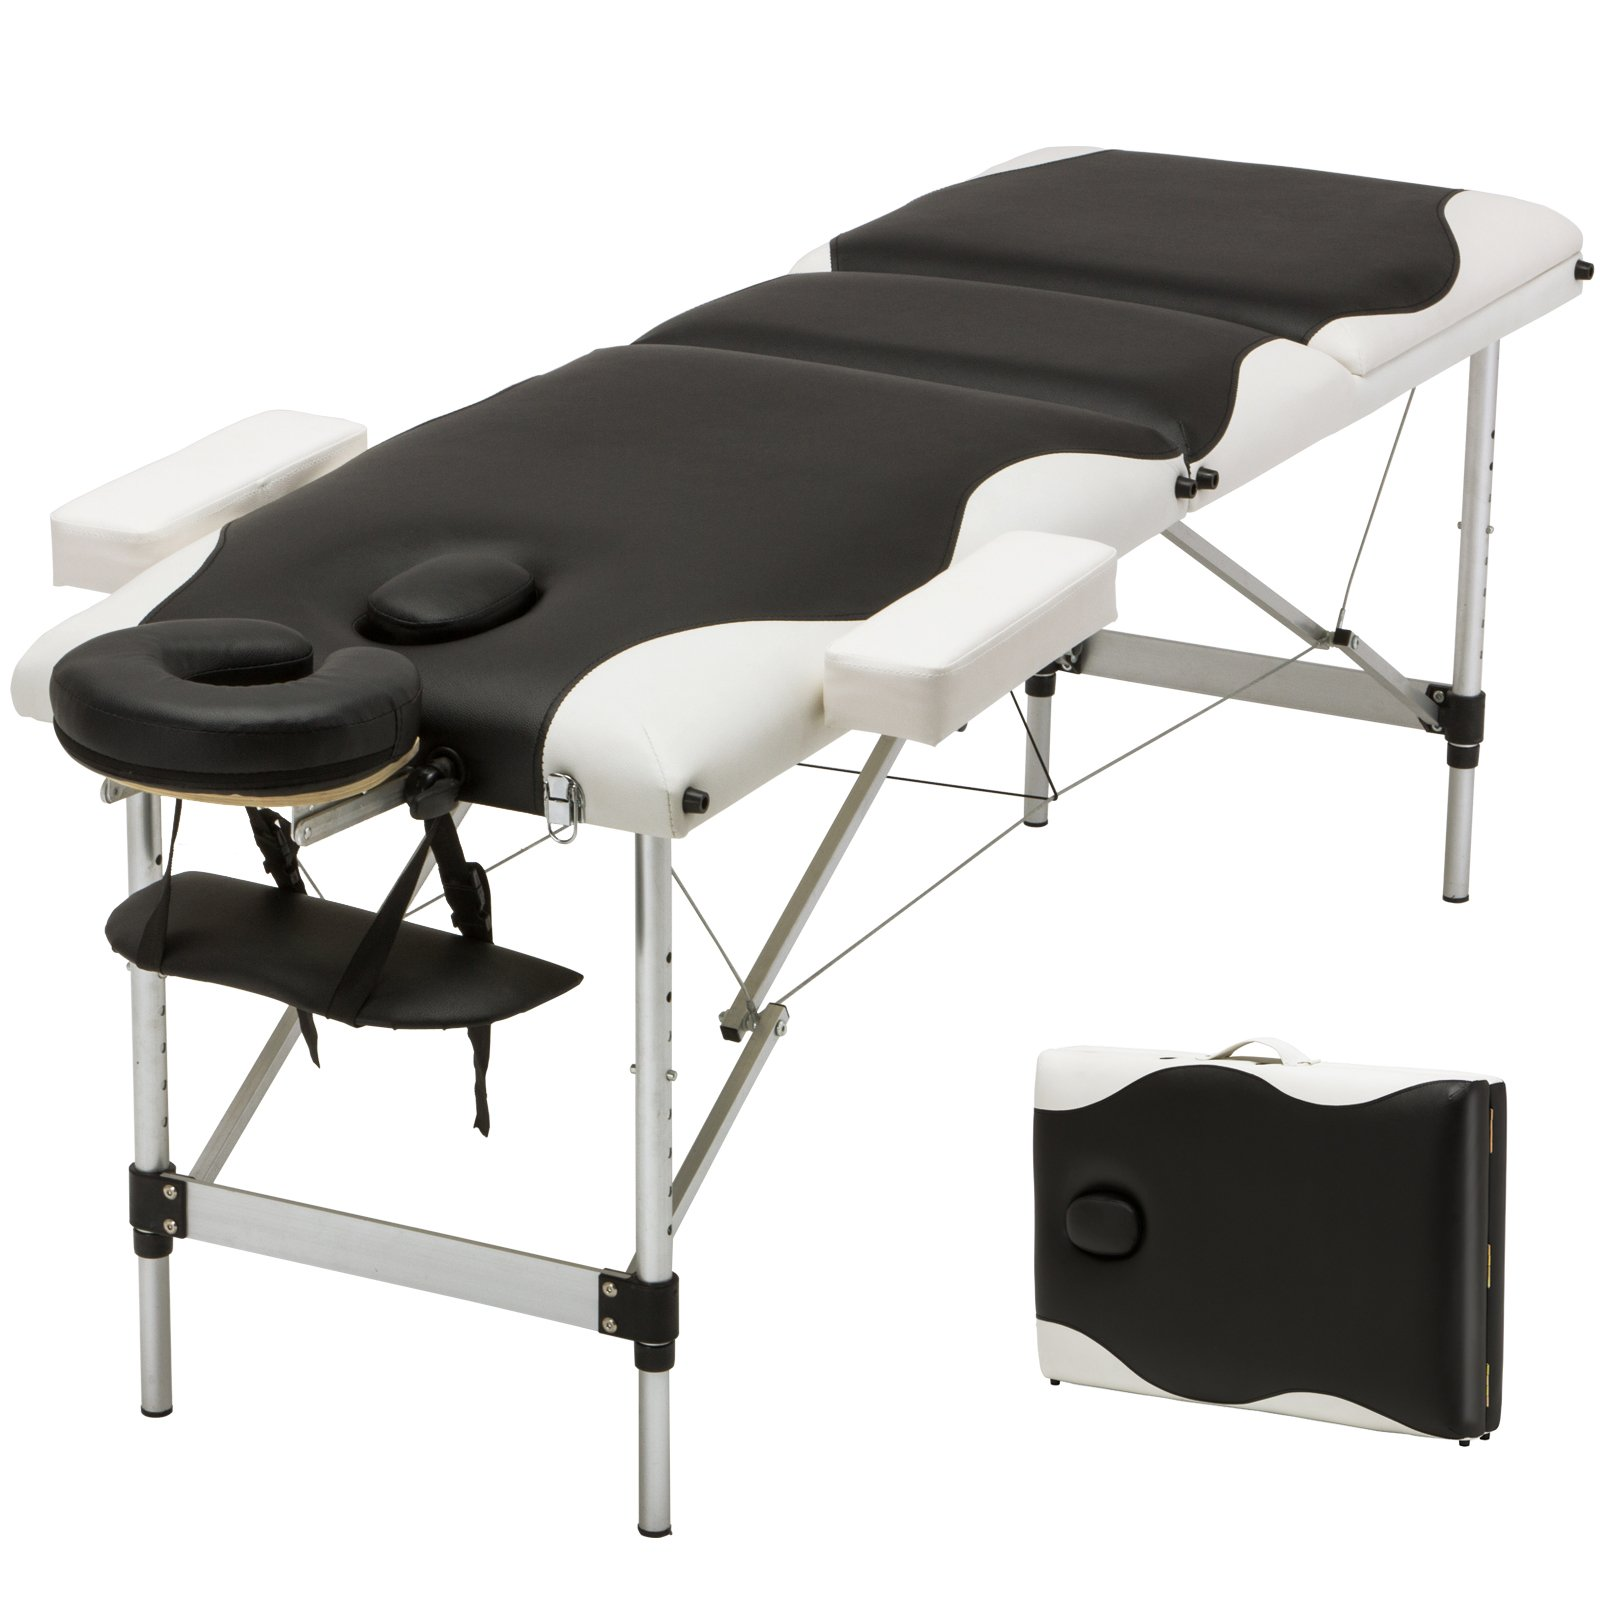 Uenjoy Folding Massage Table 84'' Professional Folding Massage Bed With Carrying Bag 3 Fold,Black & White Alu